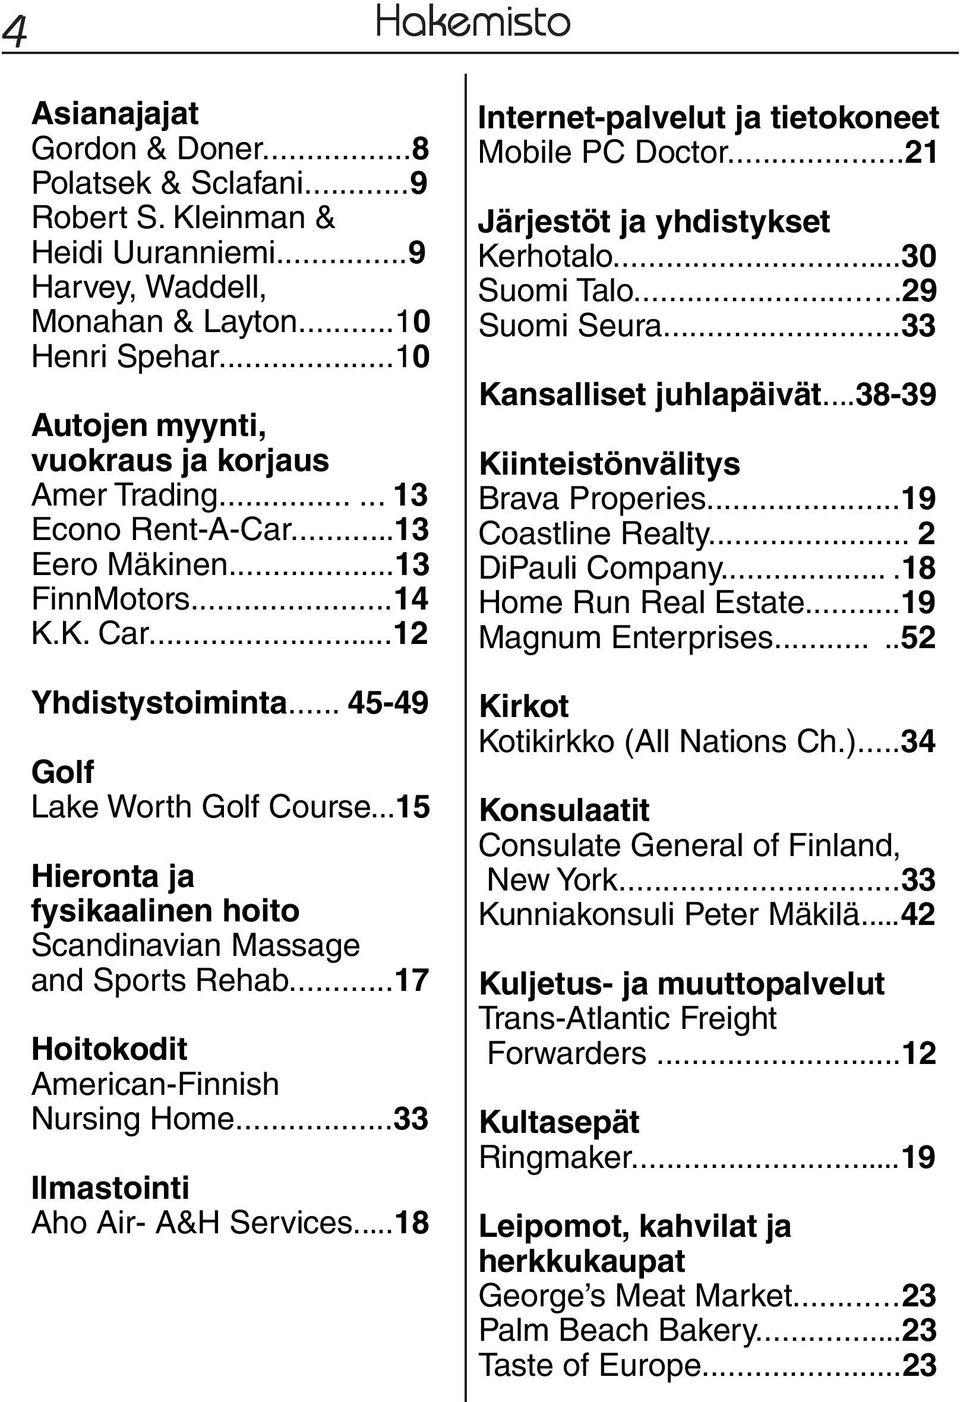 ..15 Hieronta ja fysikaalinen hoito Scandinavian Massage and Sports Rehab...17 Hoitokodit American-Finnish Nursing Home...33 Ilmastointi Aho Air- A&H Services.